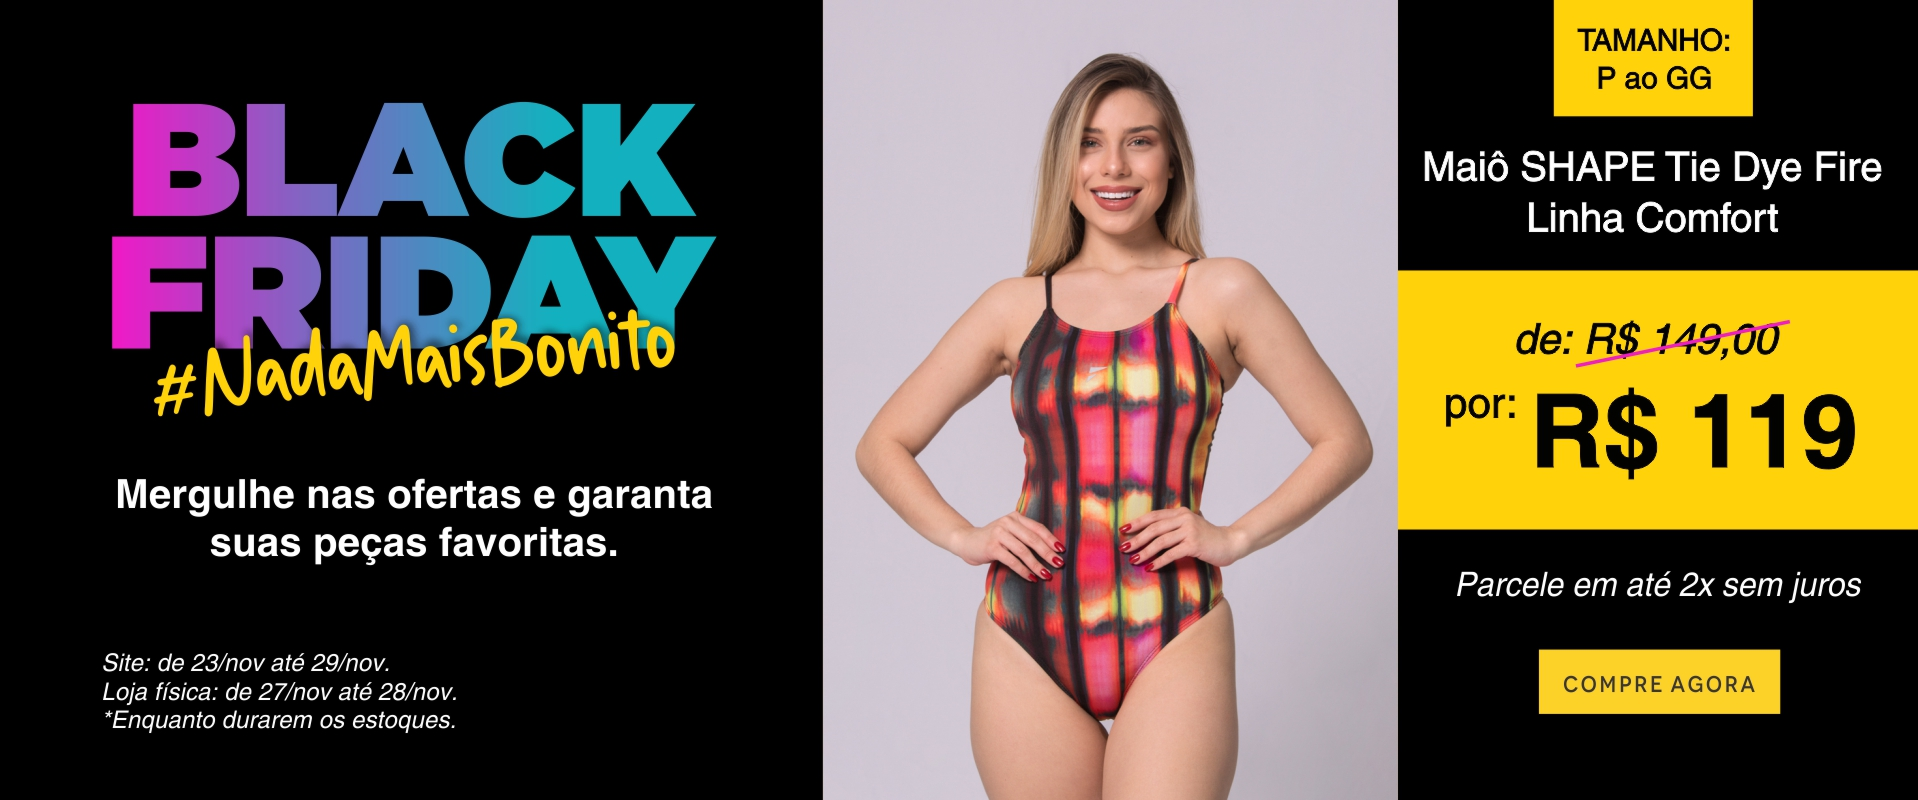 Maio Shape 2 - Black Friday